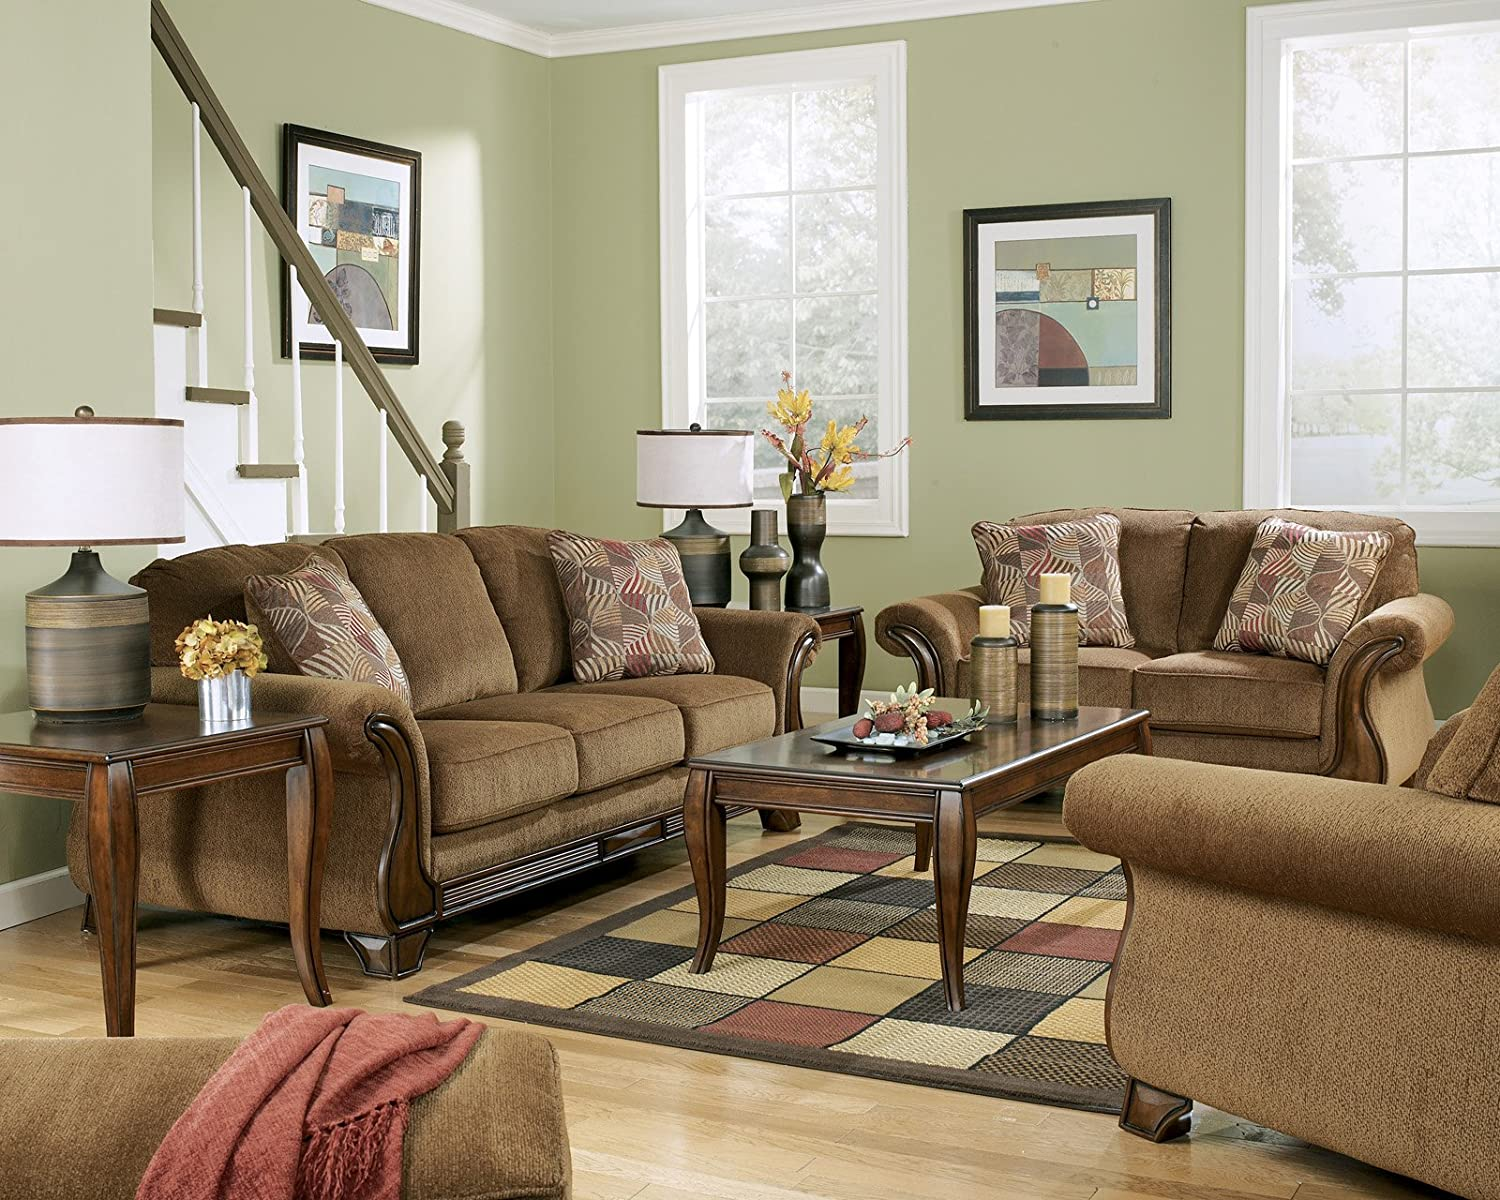 Amazon com signature design by ashley montgomery living room set with sofa loveseat living room chair and coffee table set kitchen dining